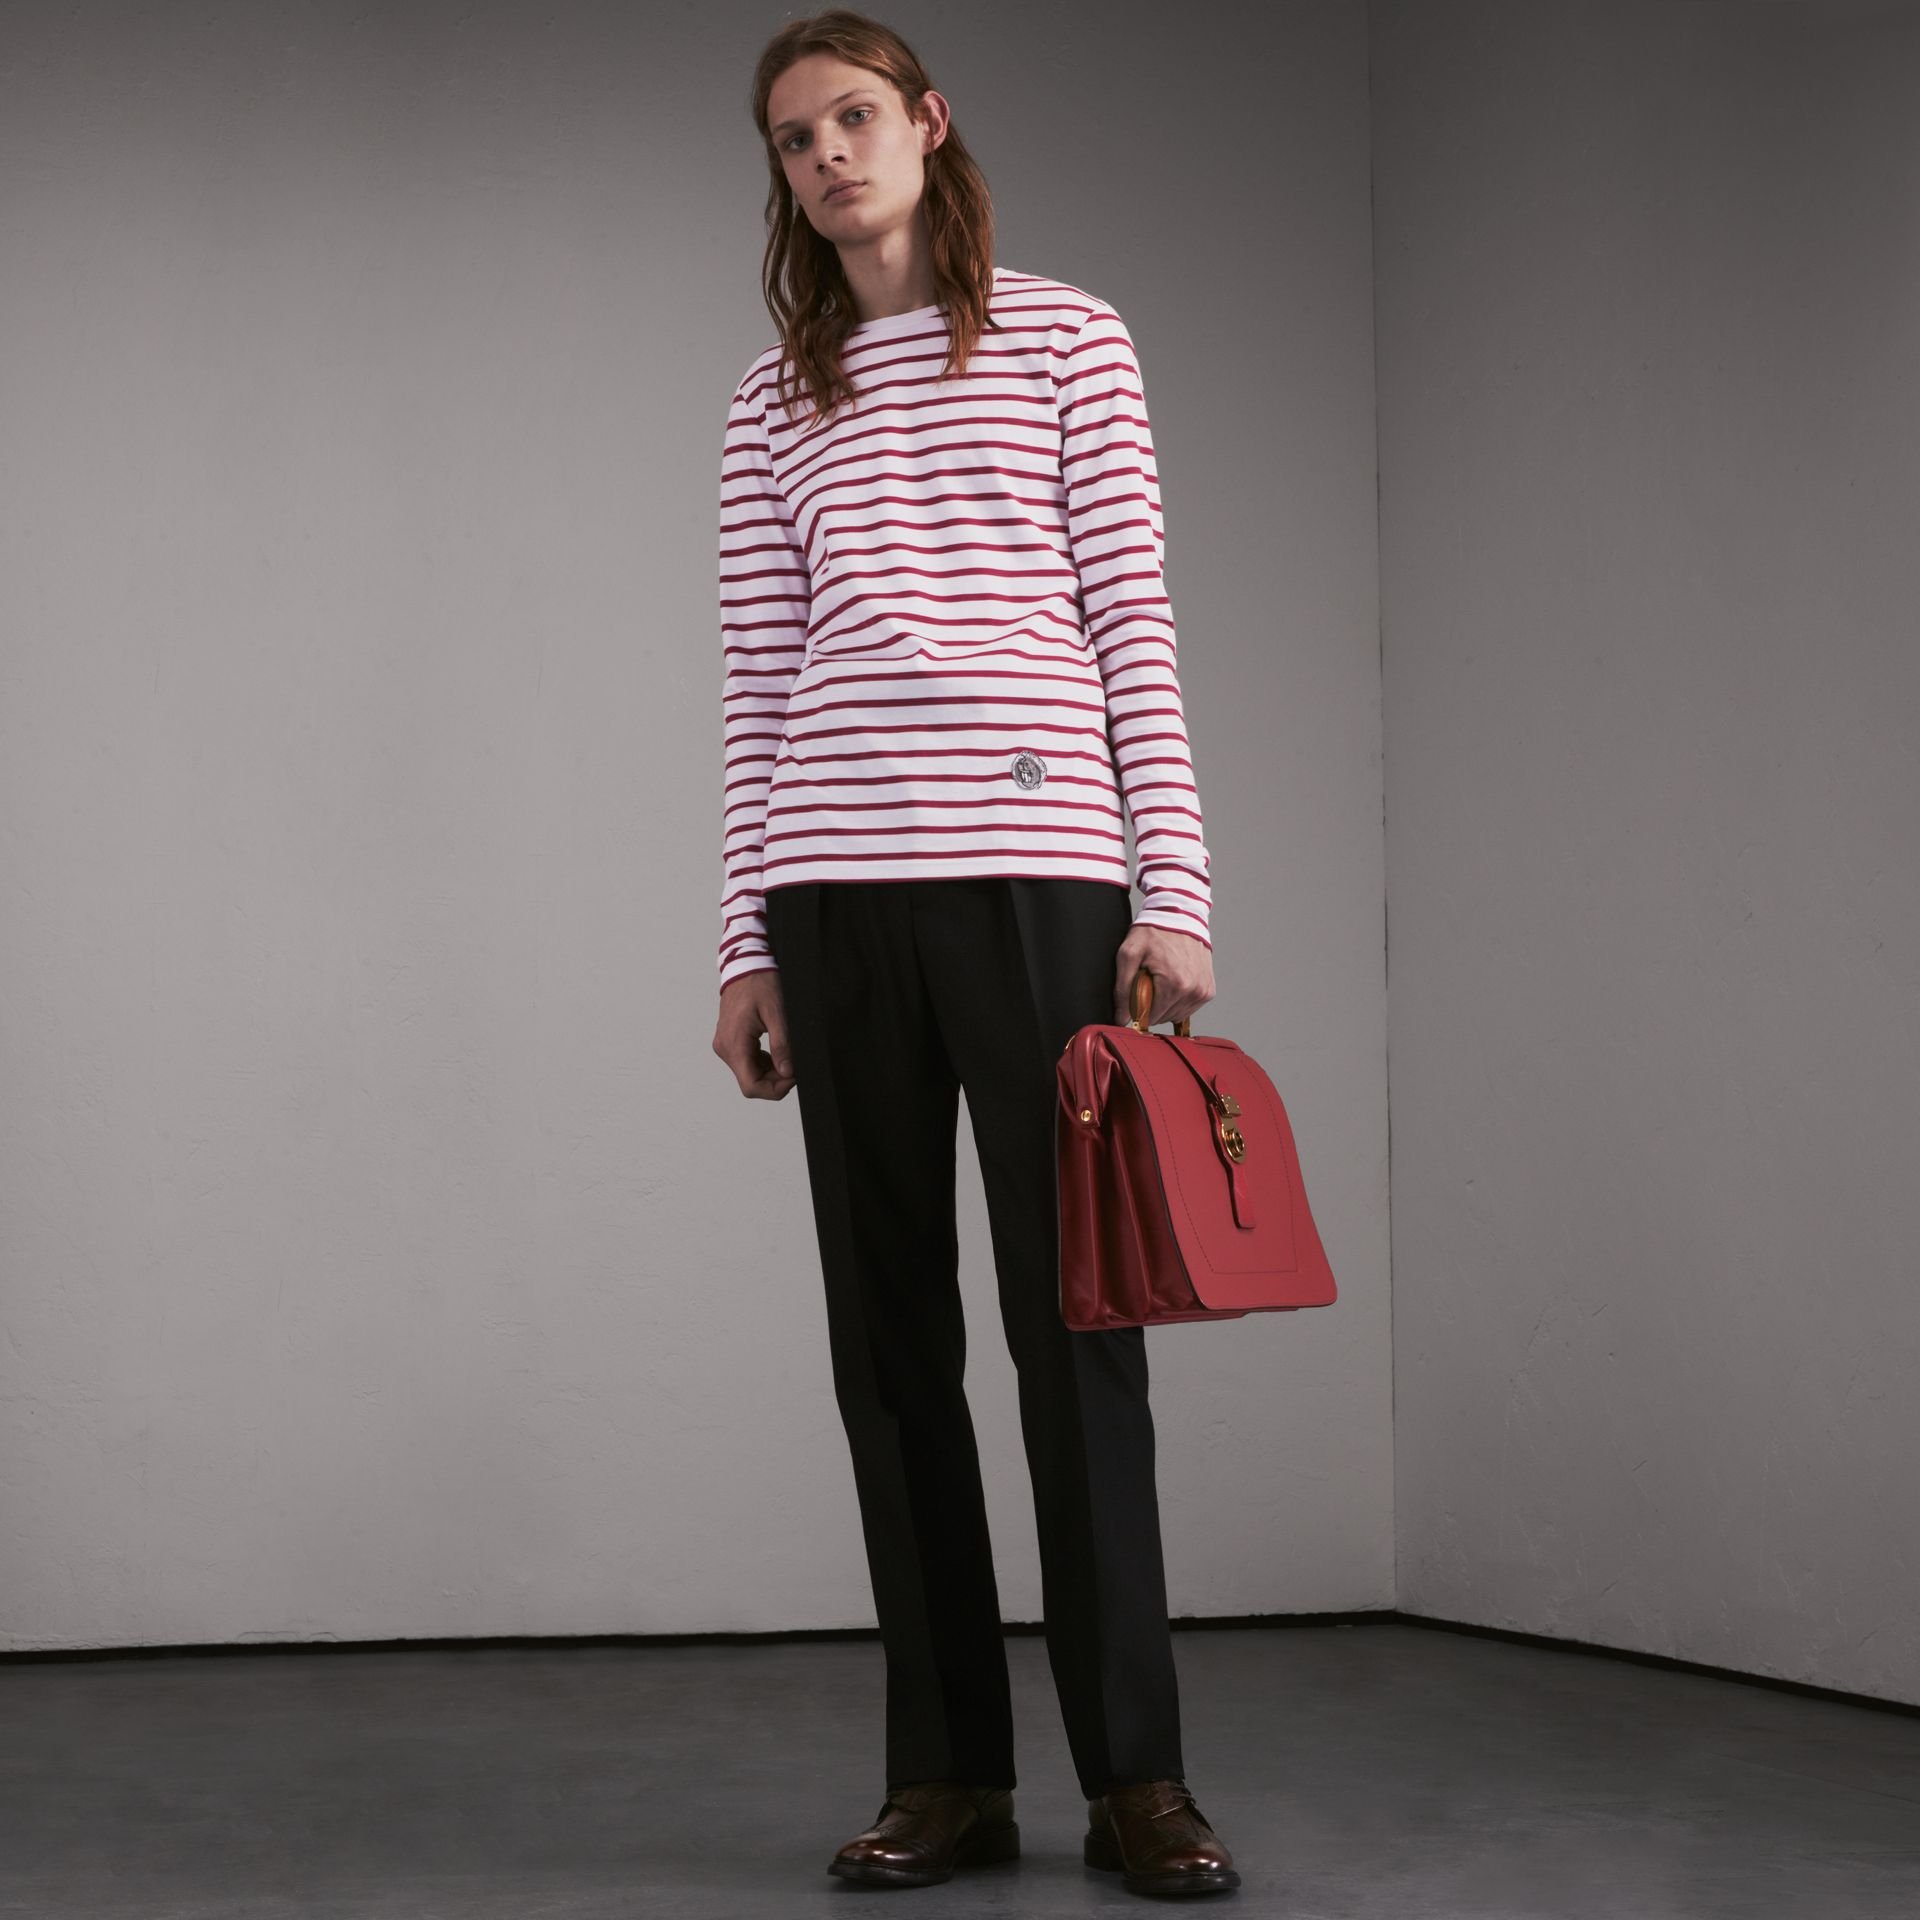 Unisex Pallas Heads Motif Breton Stripe Cotton Top - Women | Burberry - gallery image 3